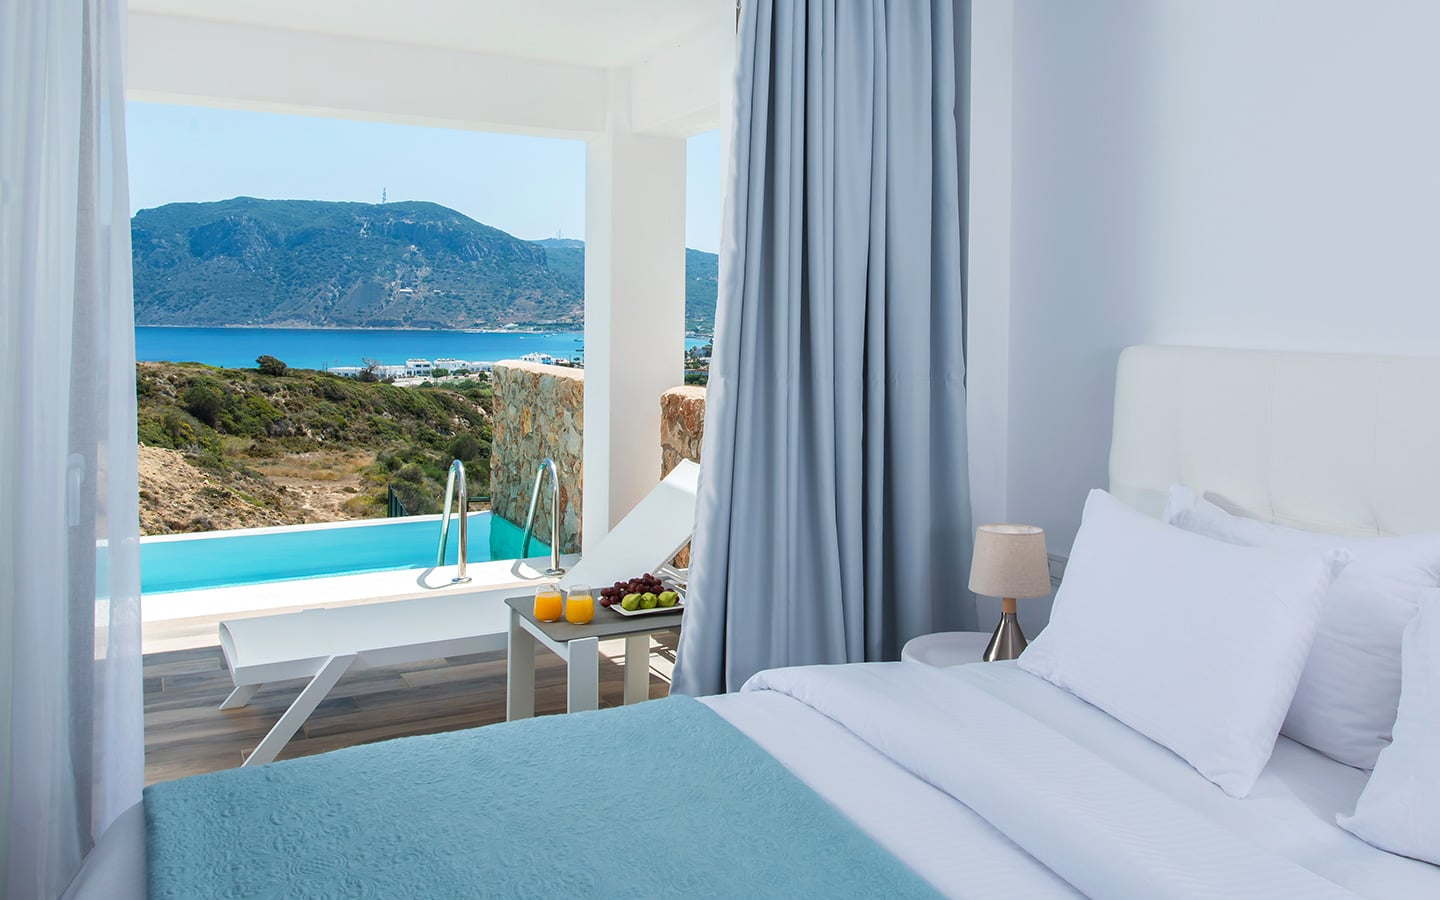 Double bed by the window overlooking the amazing view of Aegean Sea.